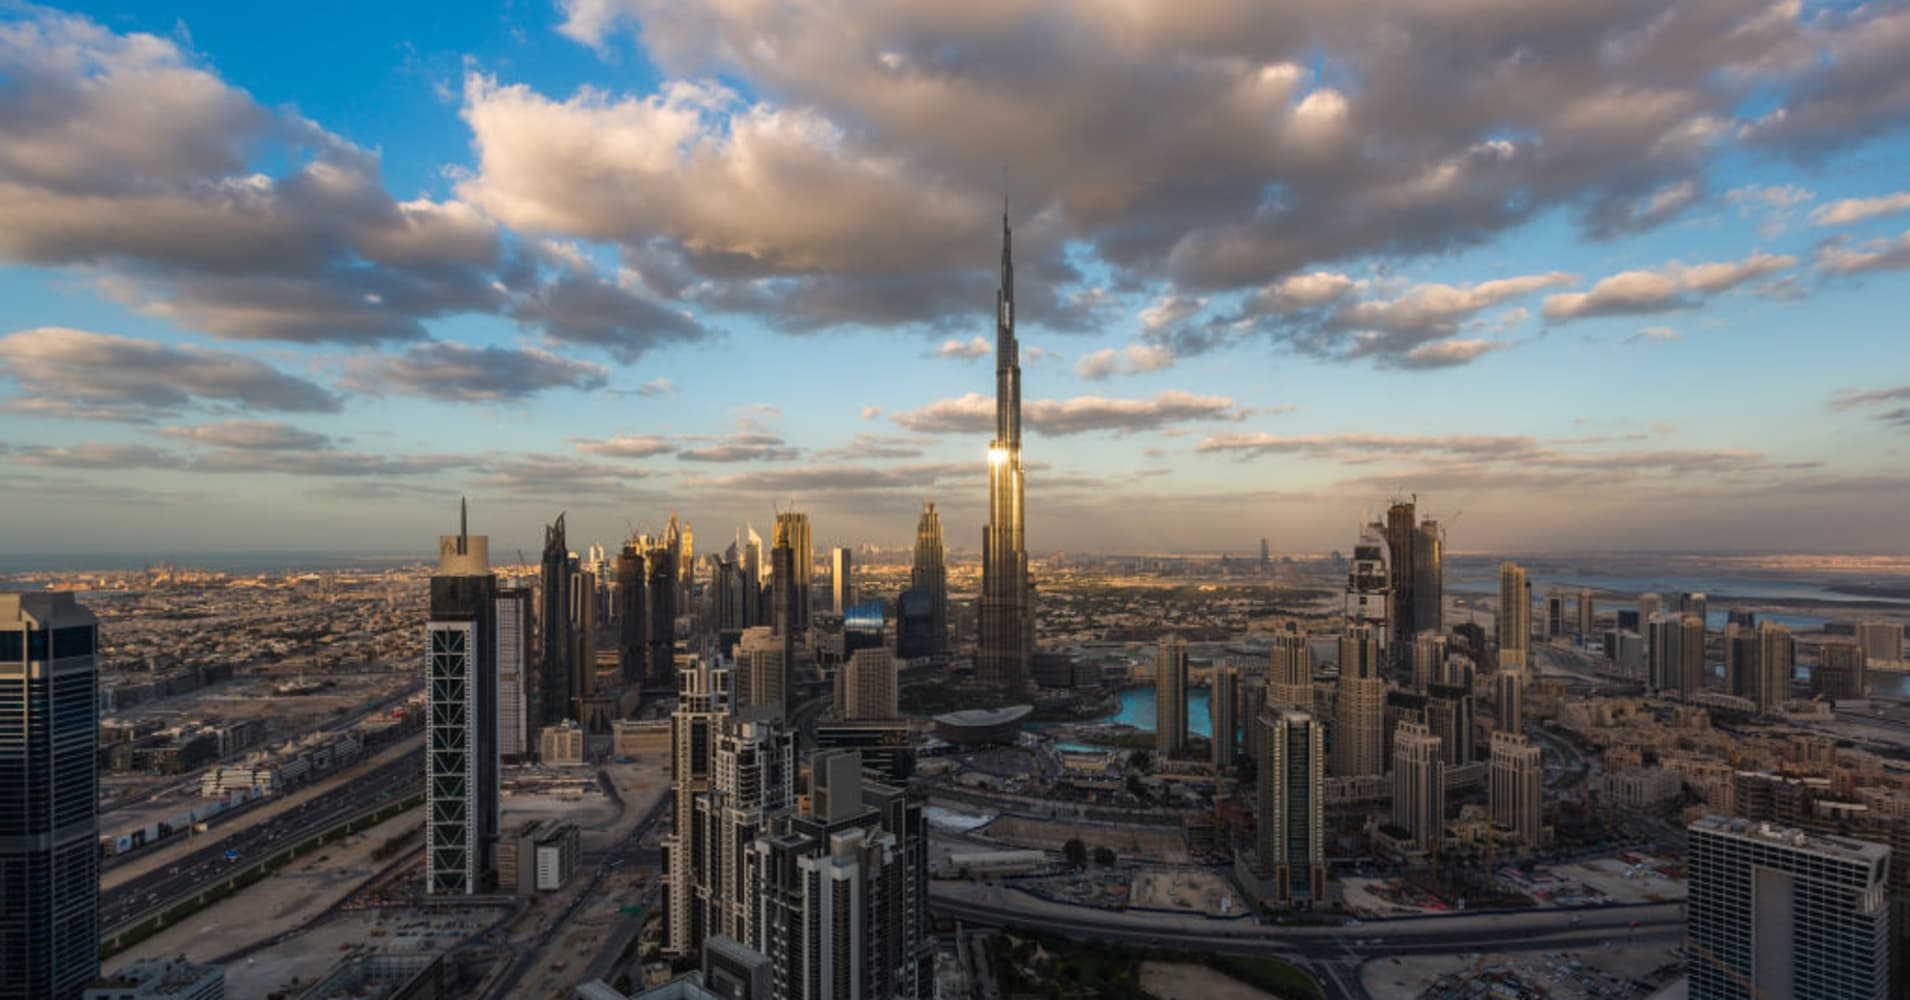 Malaysia dominates the Islamic economy, but the United Arab Emirates is hoping to close the gap